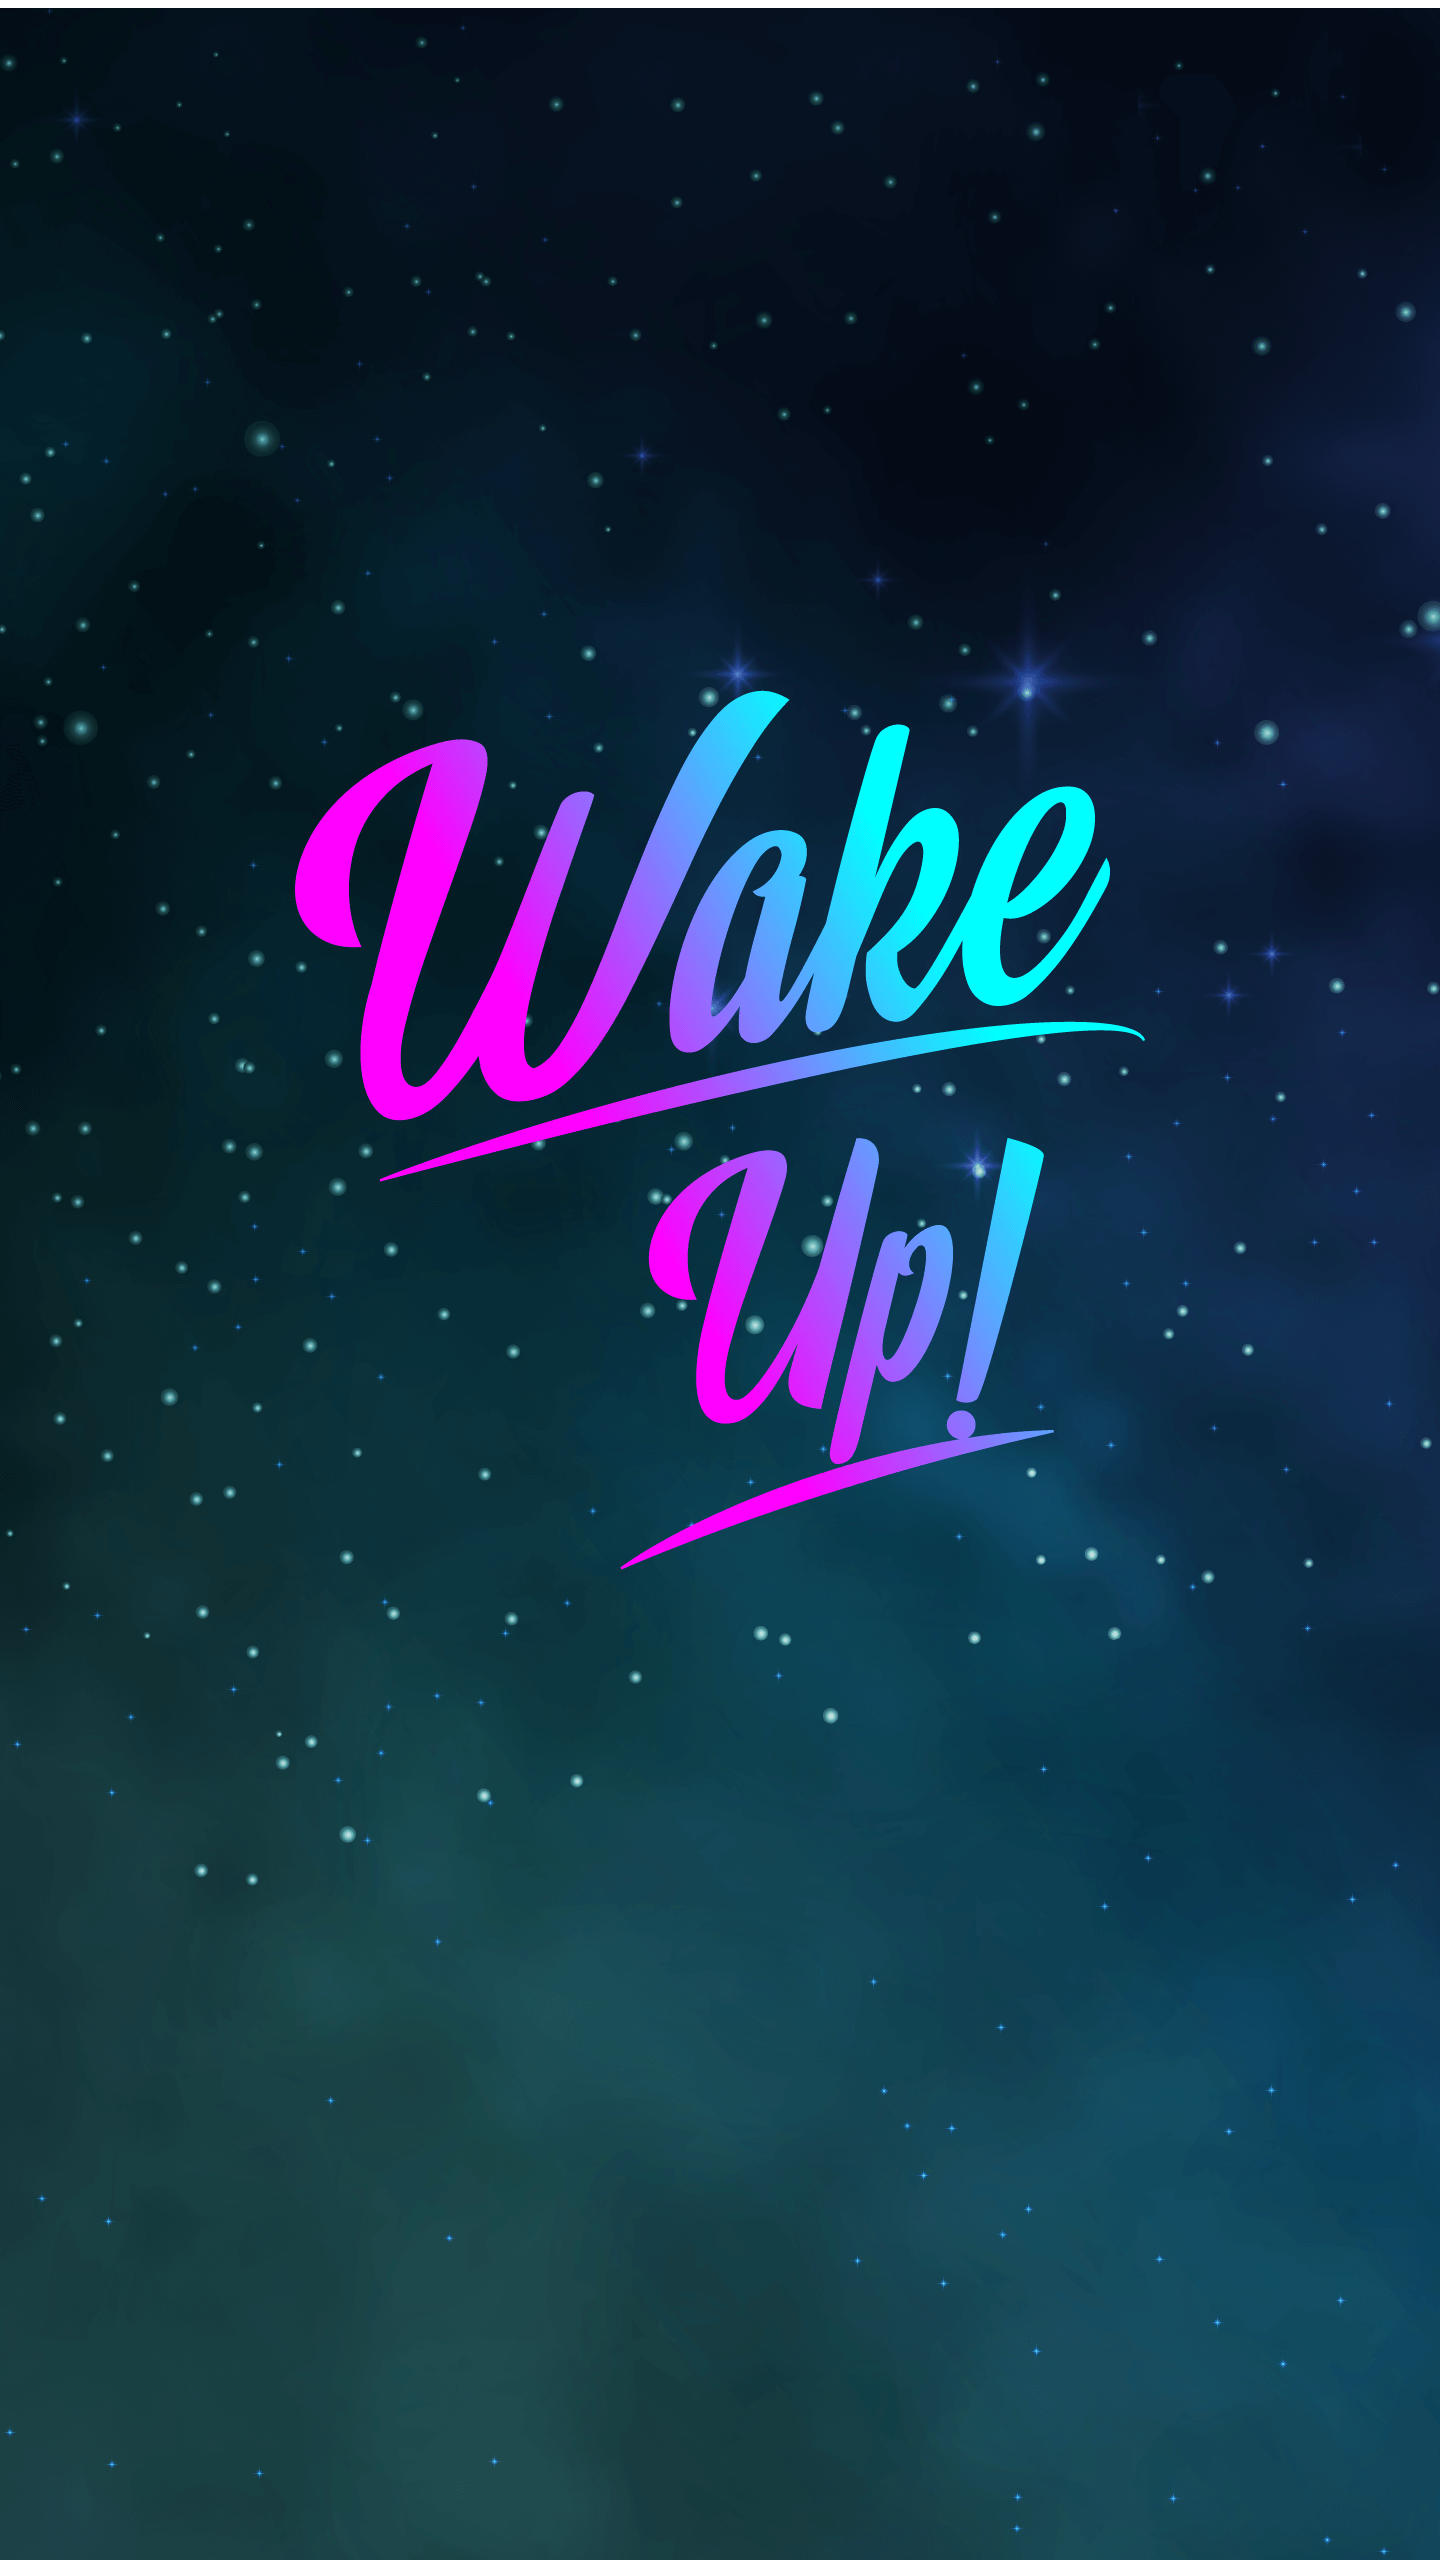 Wake up iPhone Wallpaper